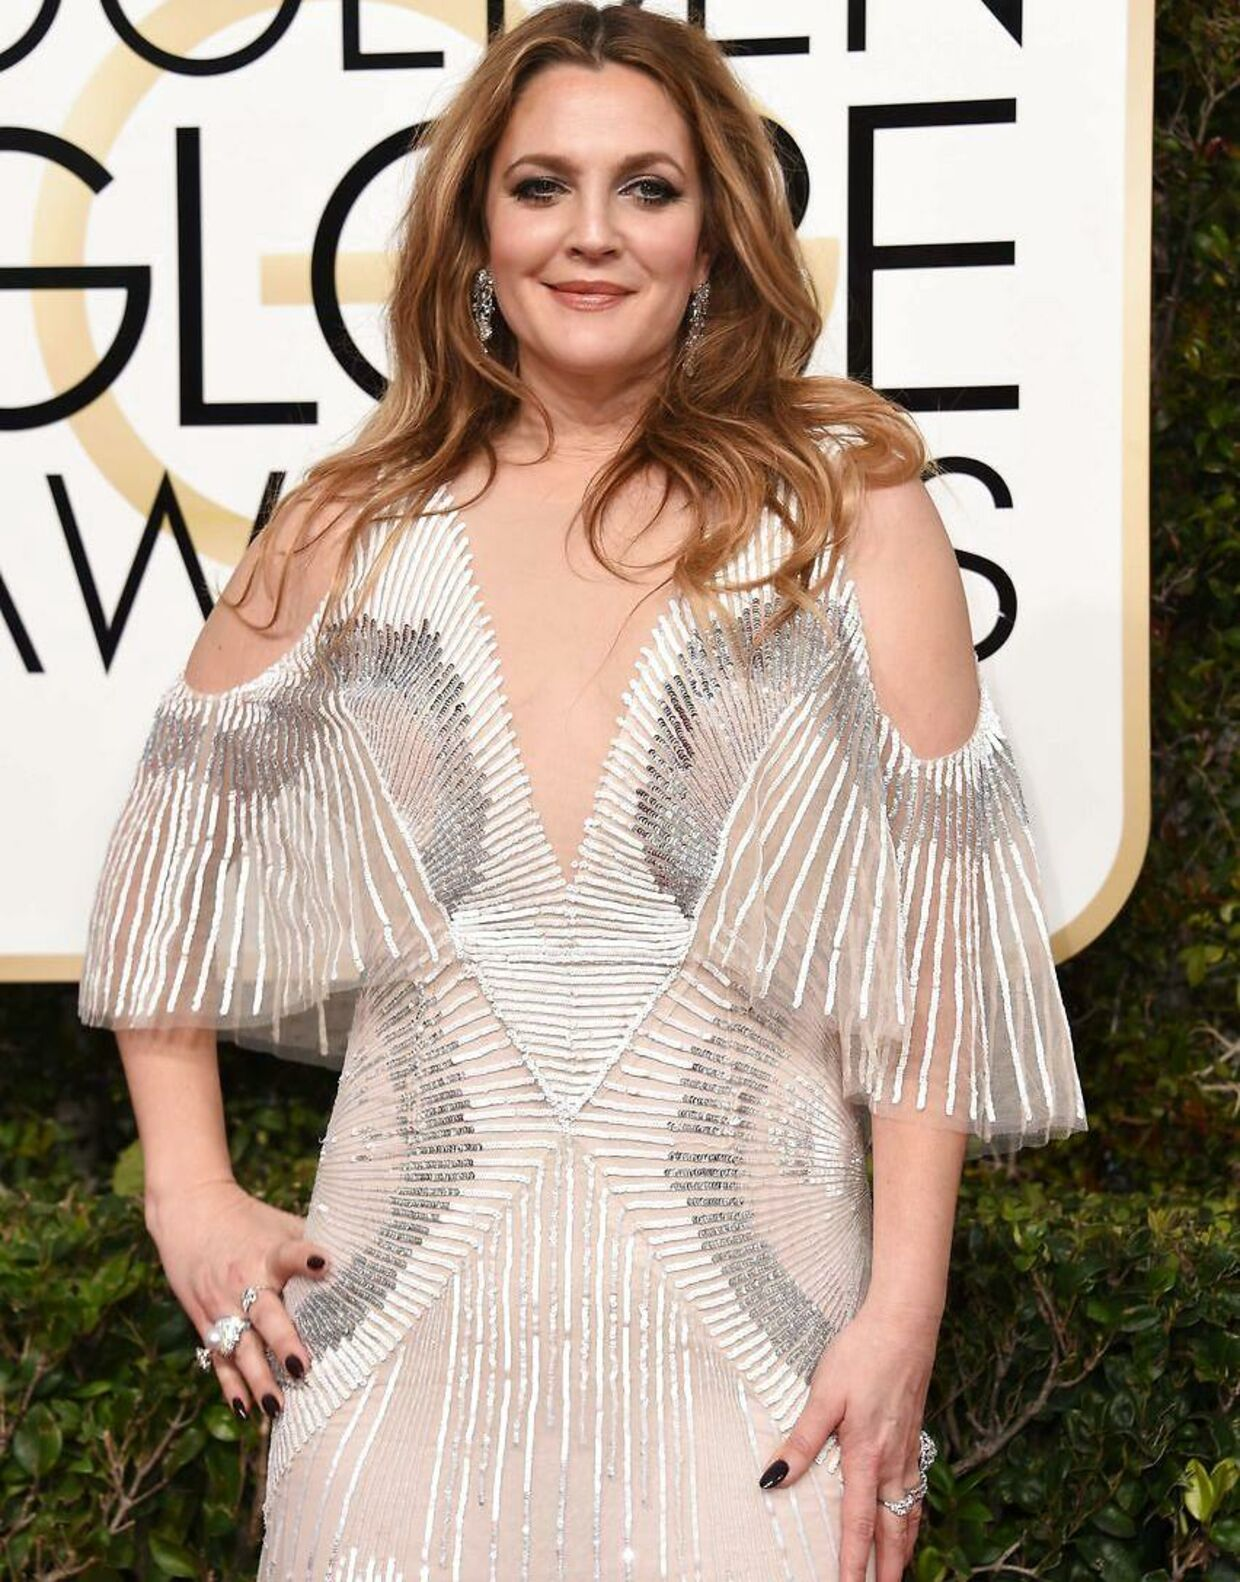 Drew Barrymore til Golden Globe Awards i januar 2017.